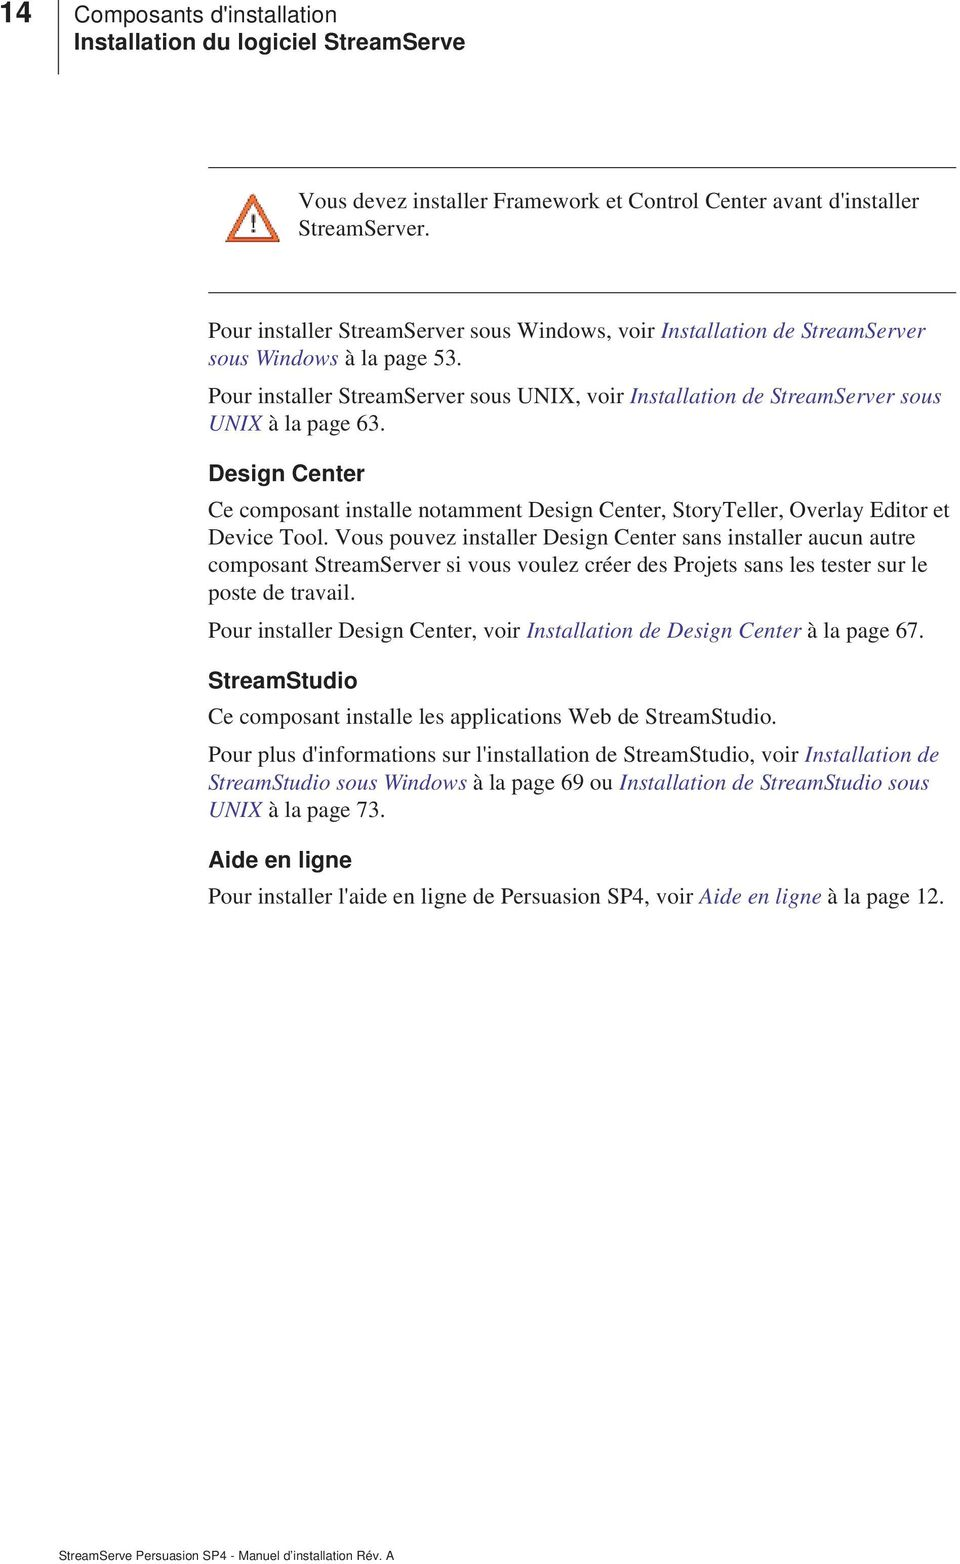 Design Center Ce composant installe notamment Design Center, StoryTeller, Overlay Editor et Device Tool.